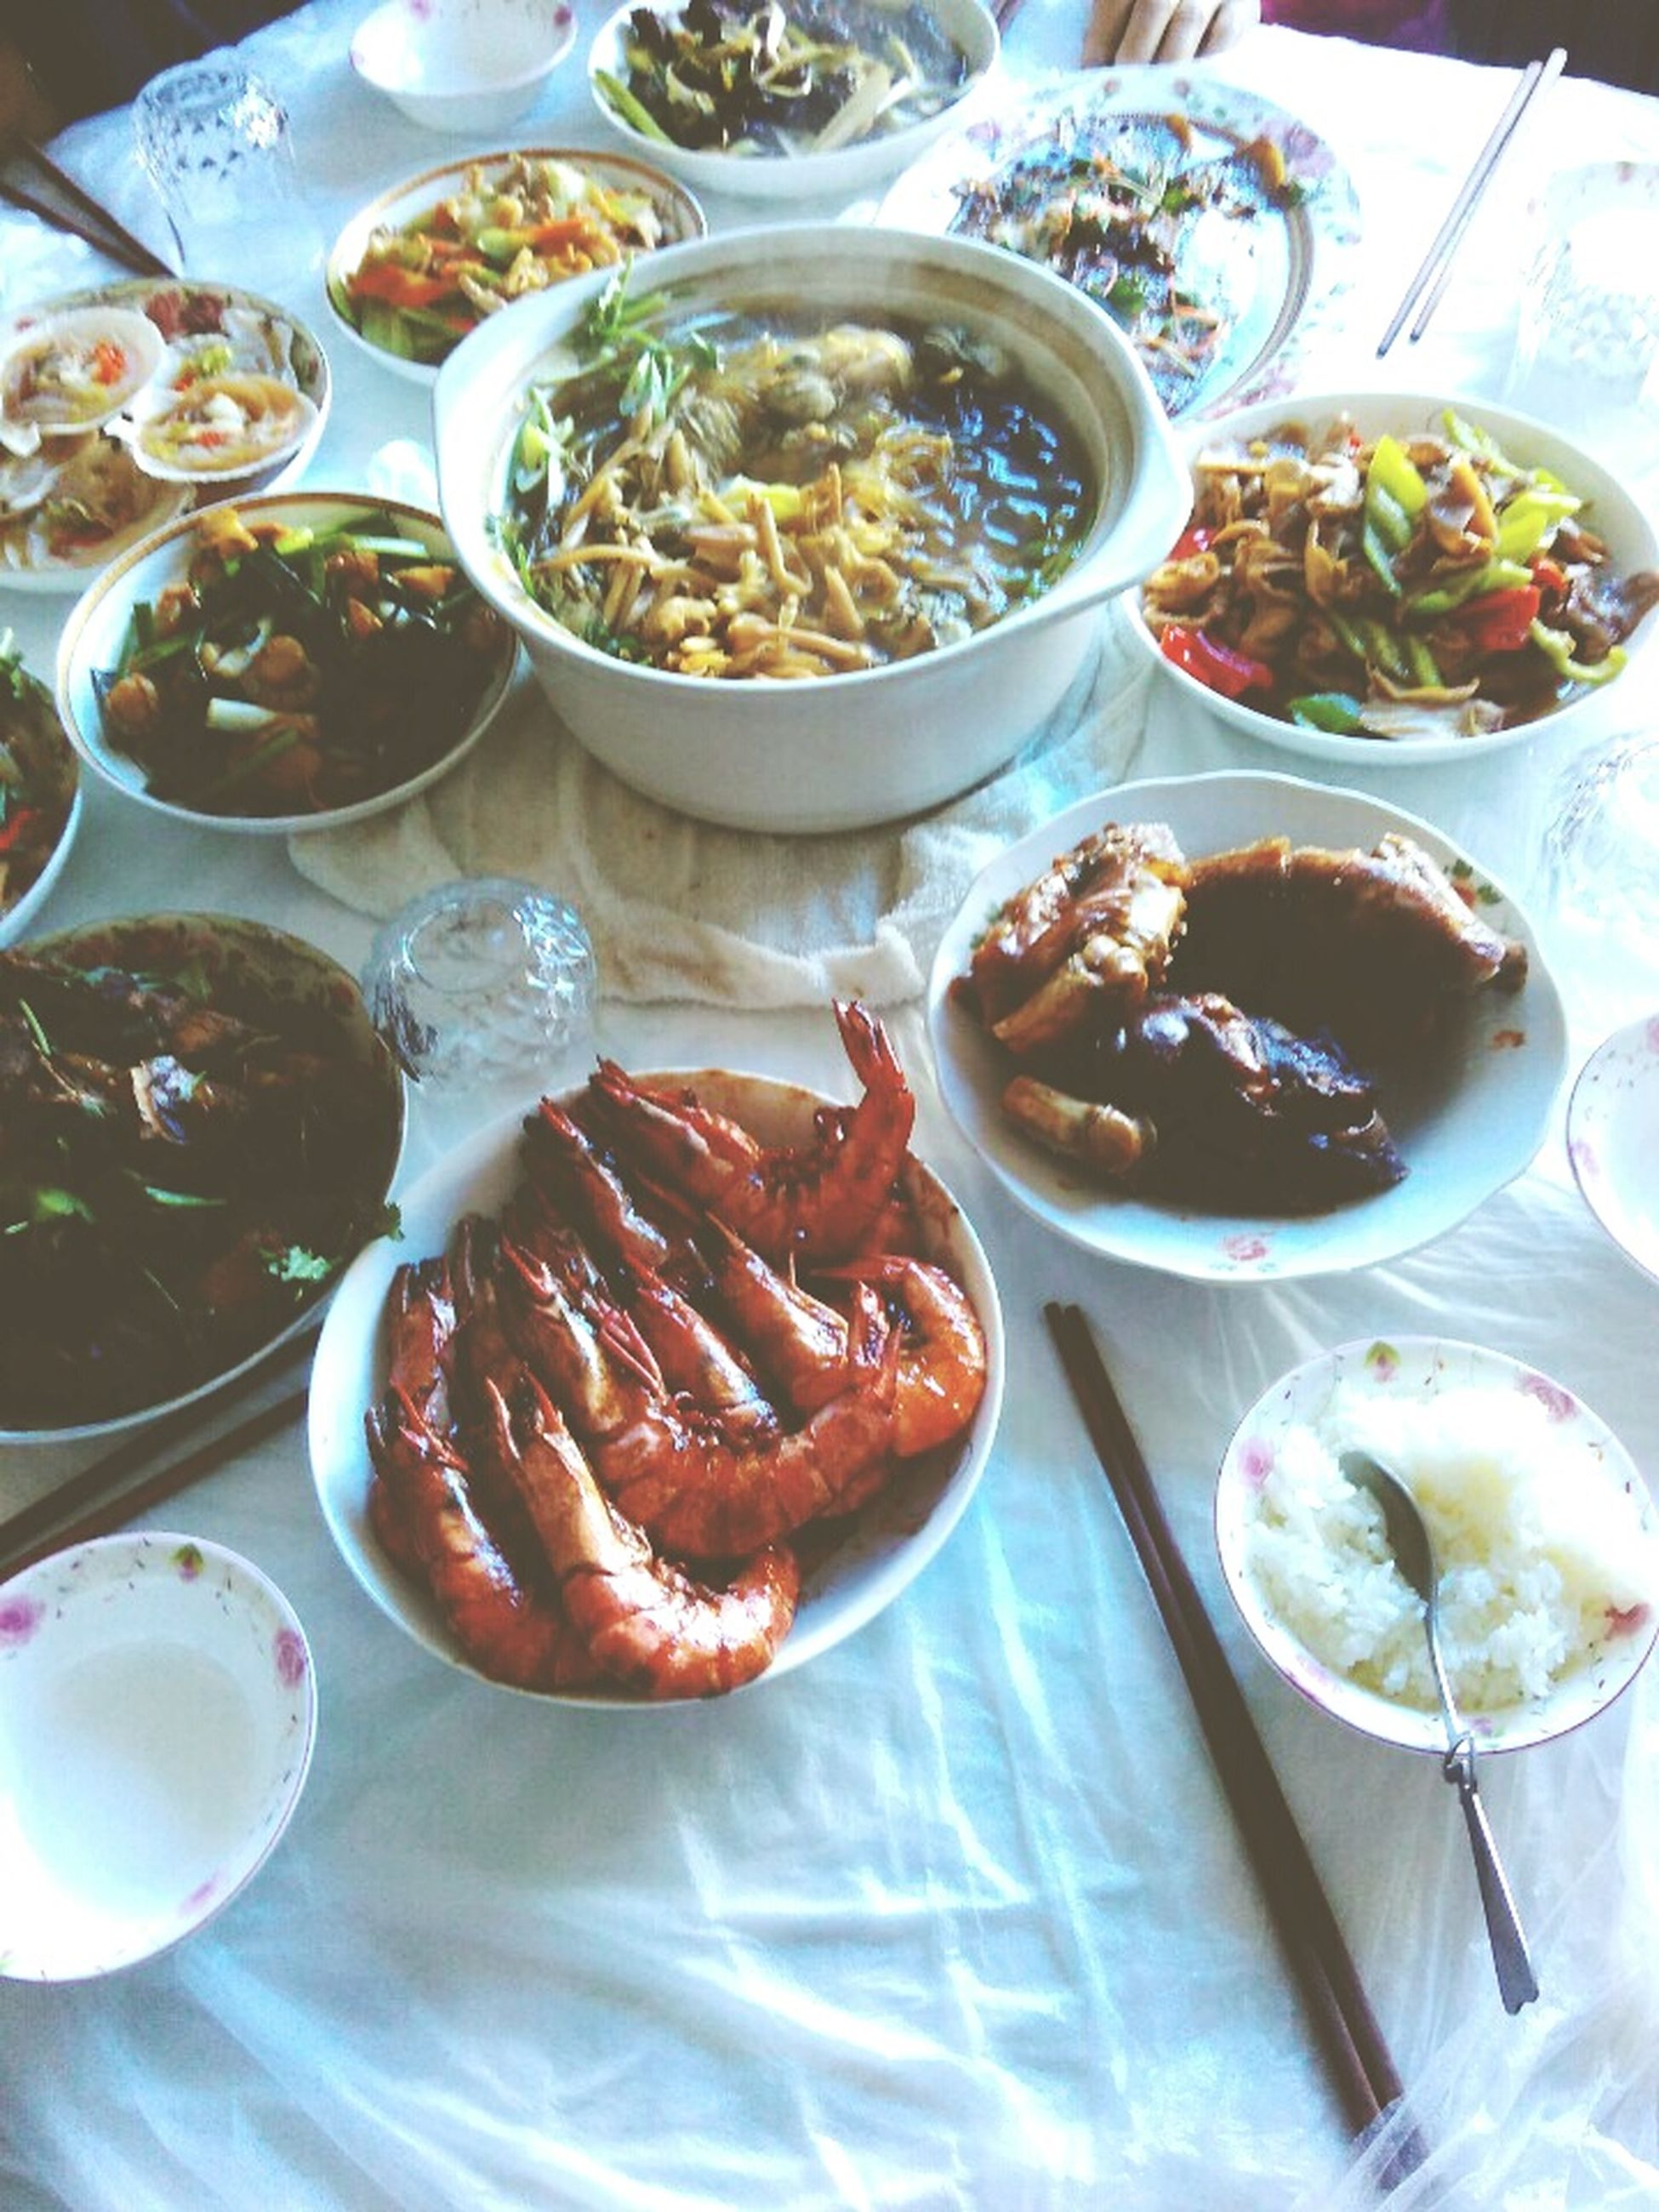 food, high angle view, meat, bowl, food and drink, table, no people, indoors, plate, healthy eating, ready-to-eat, day, breakfast, freshness, close-up